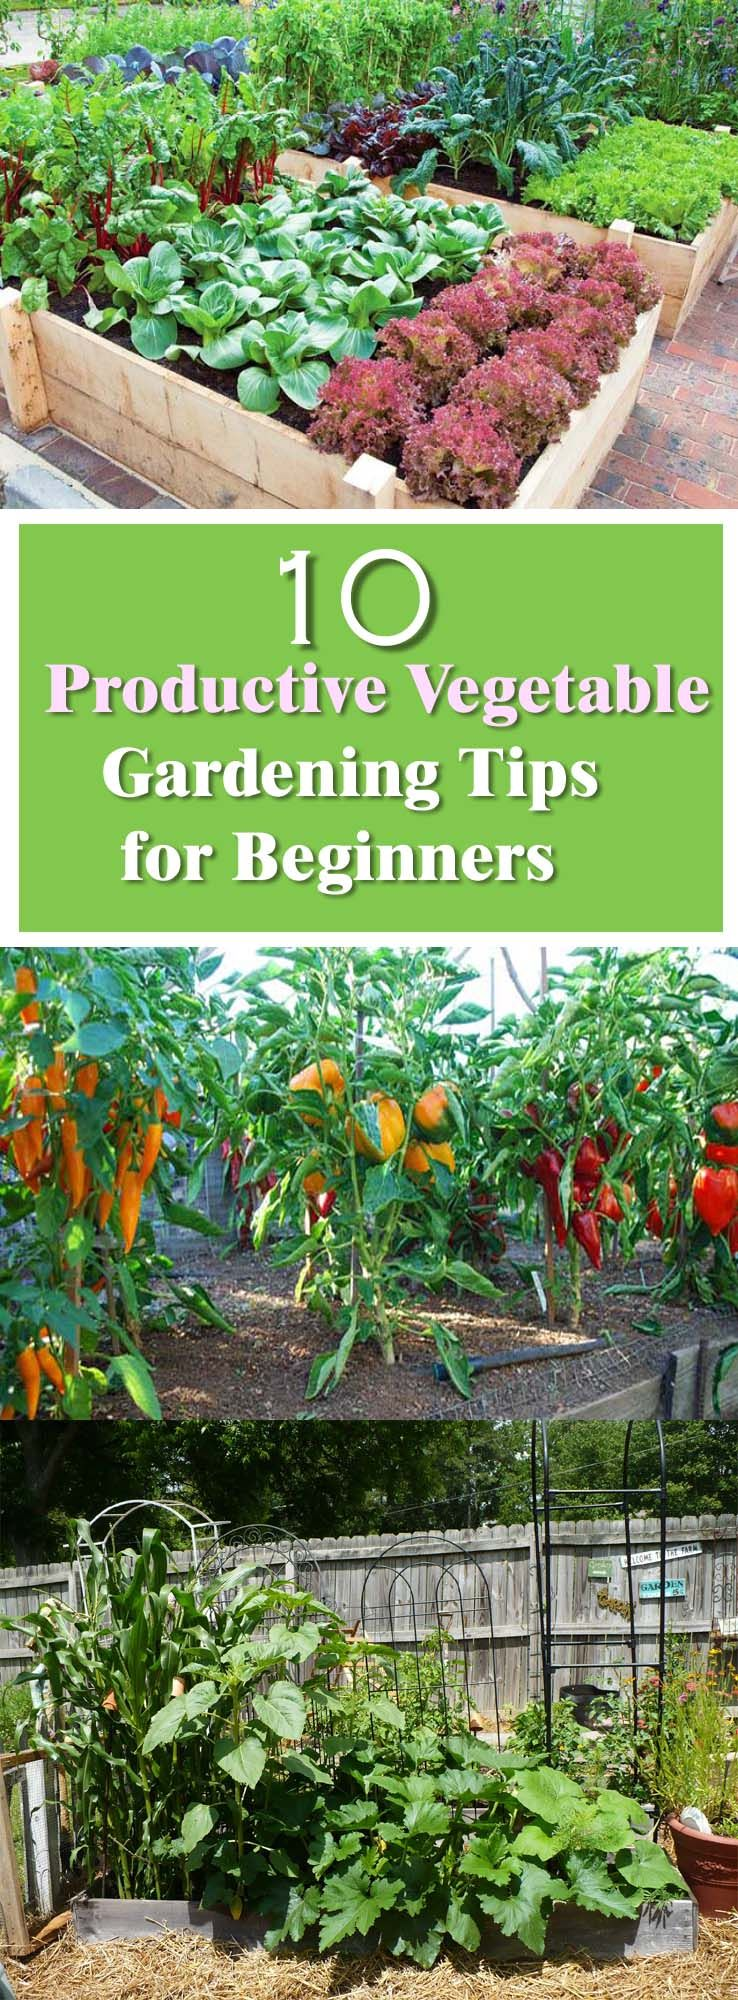 10 Productive Vegetable Gardening Tips For Beginners